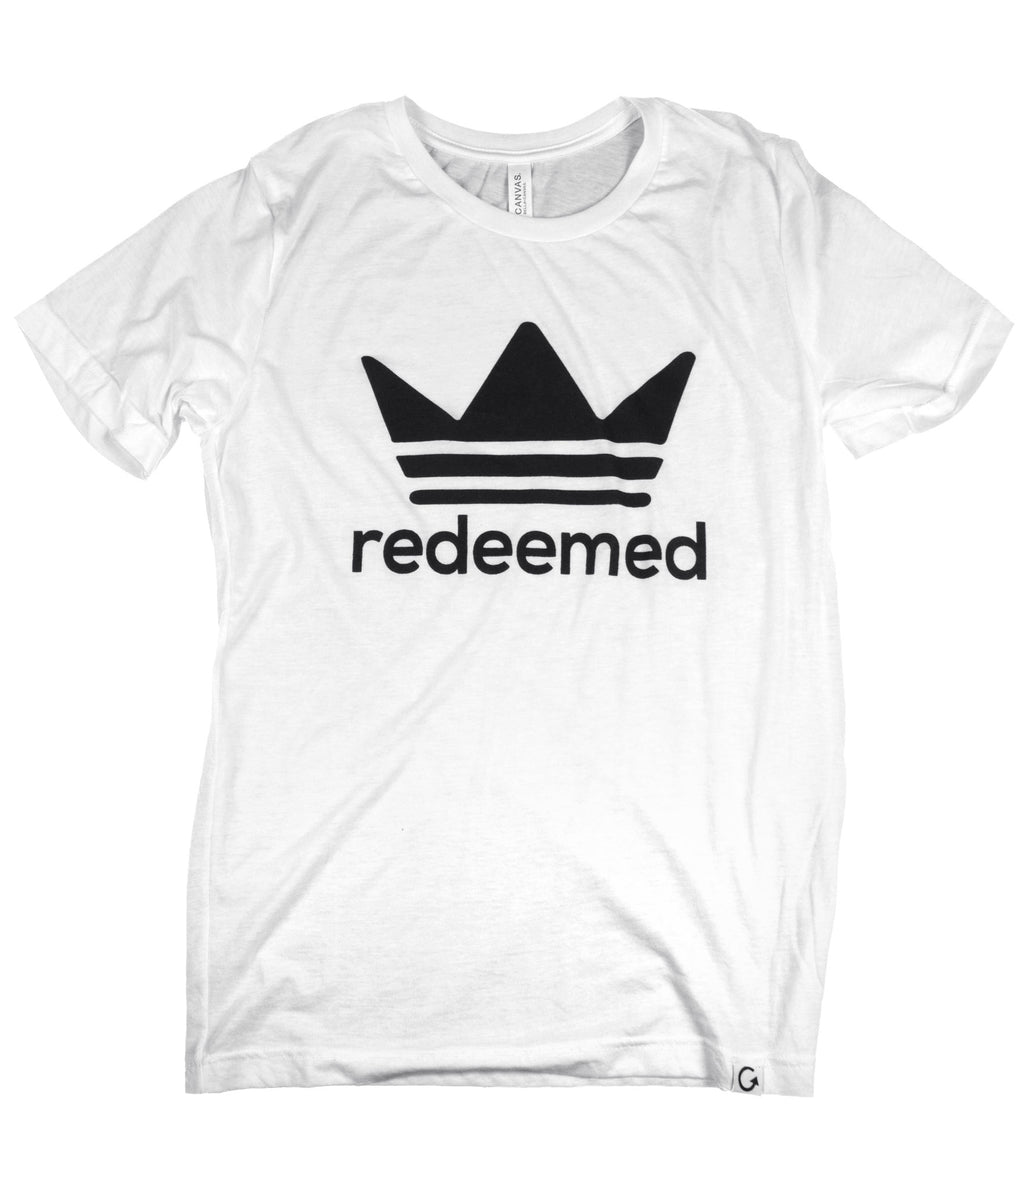 REDEEMED WHITE T-SHIRT